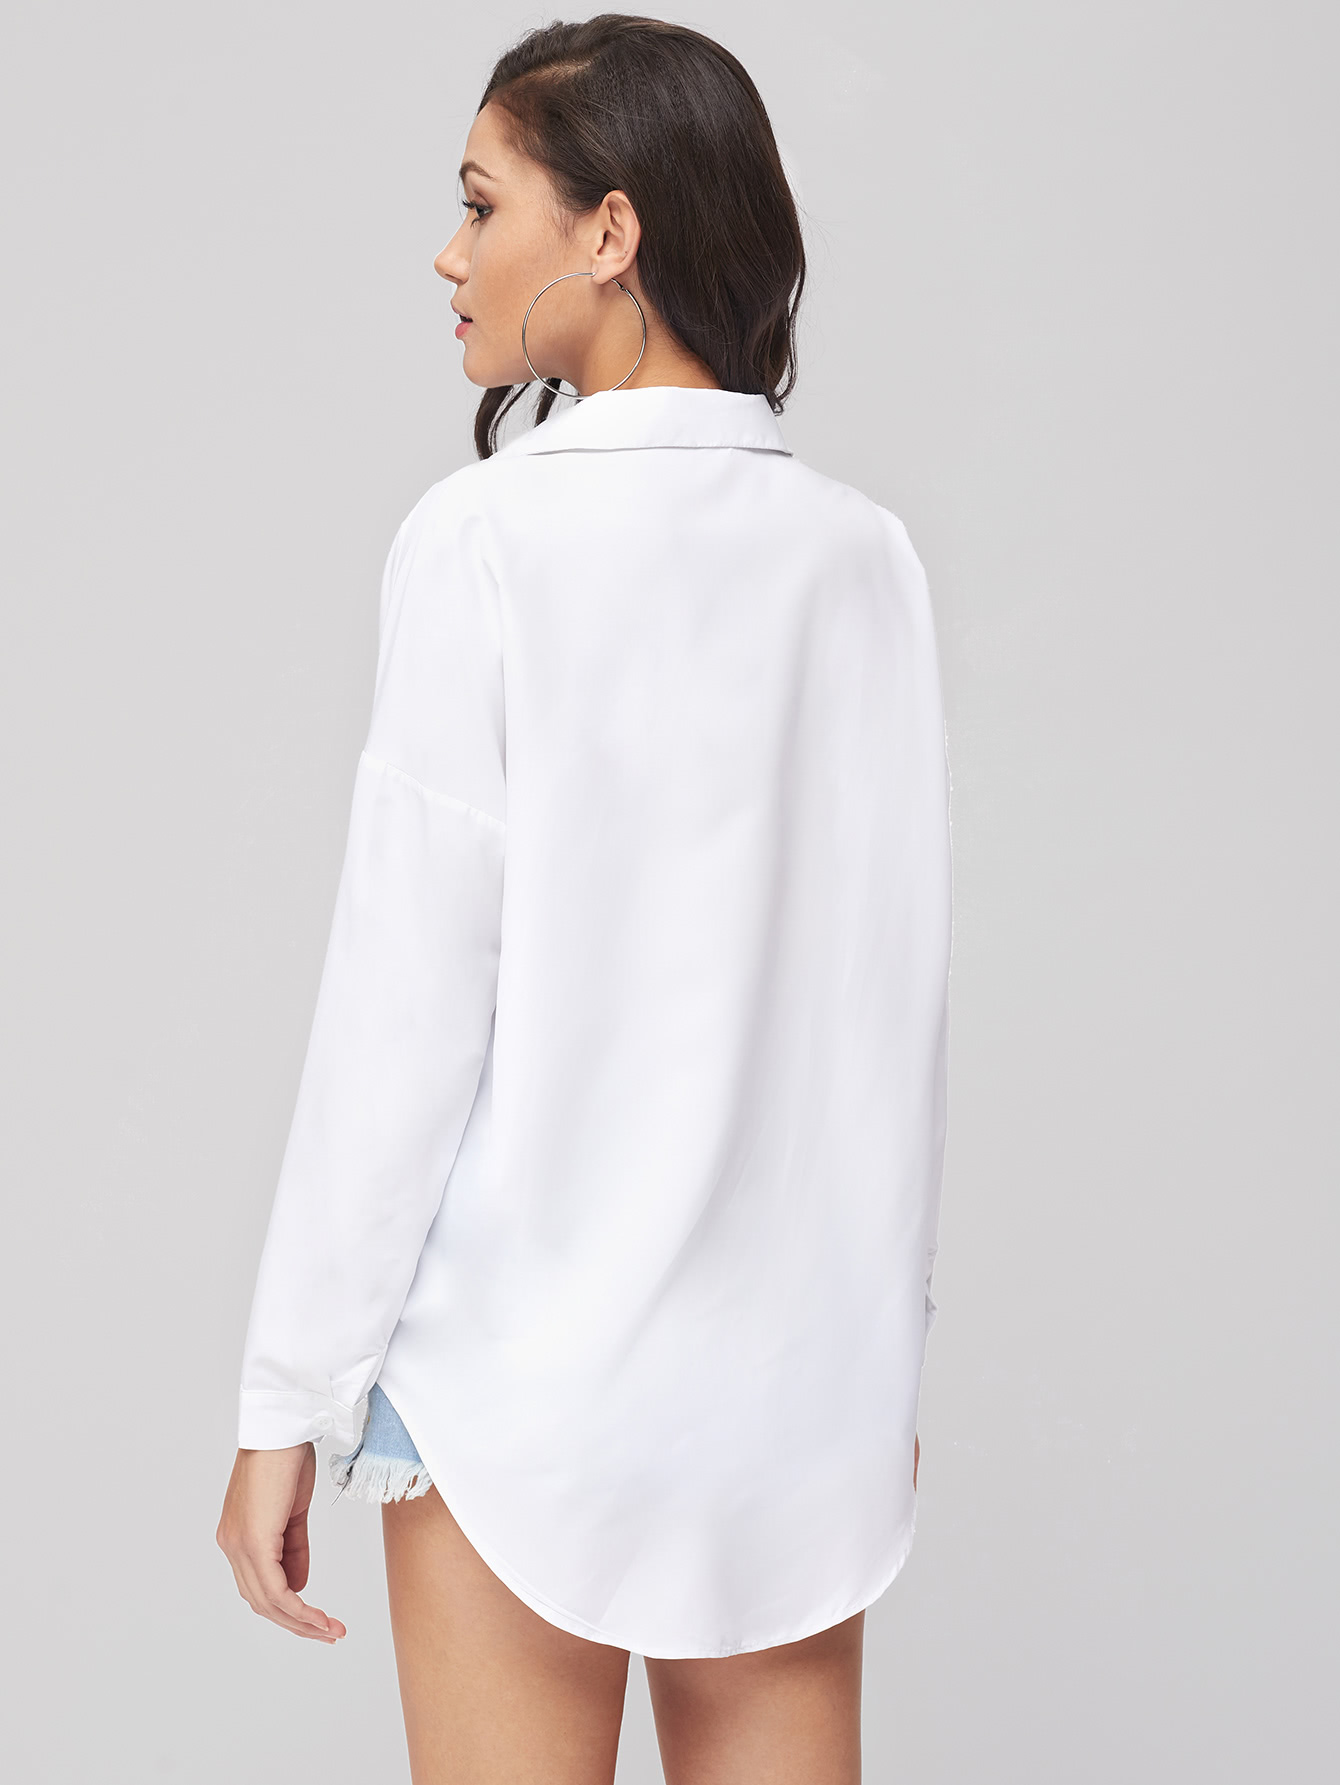 White Blouse With Collar